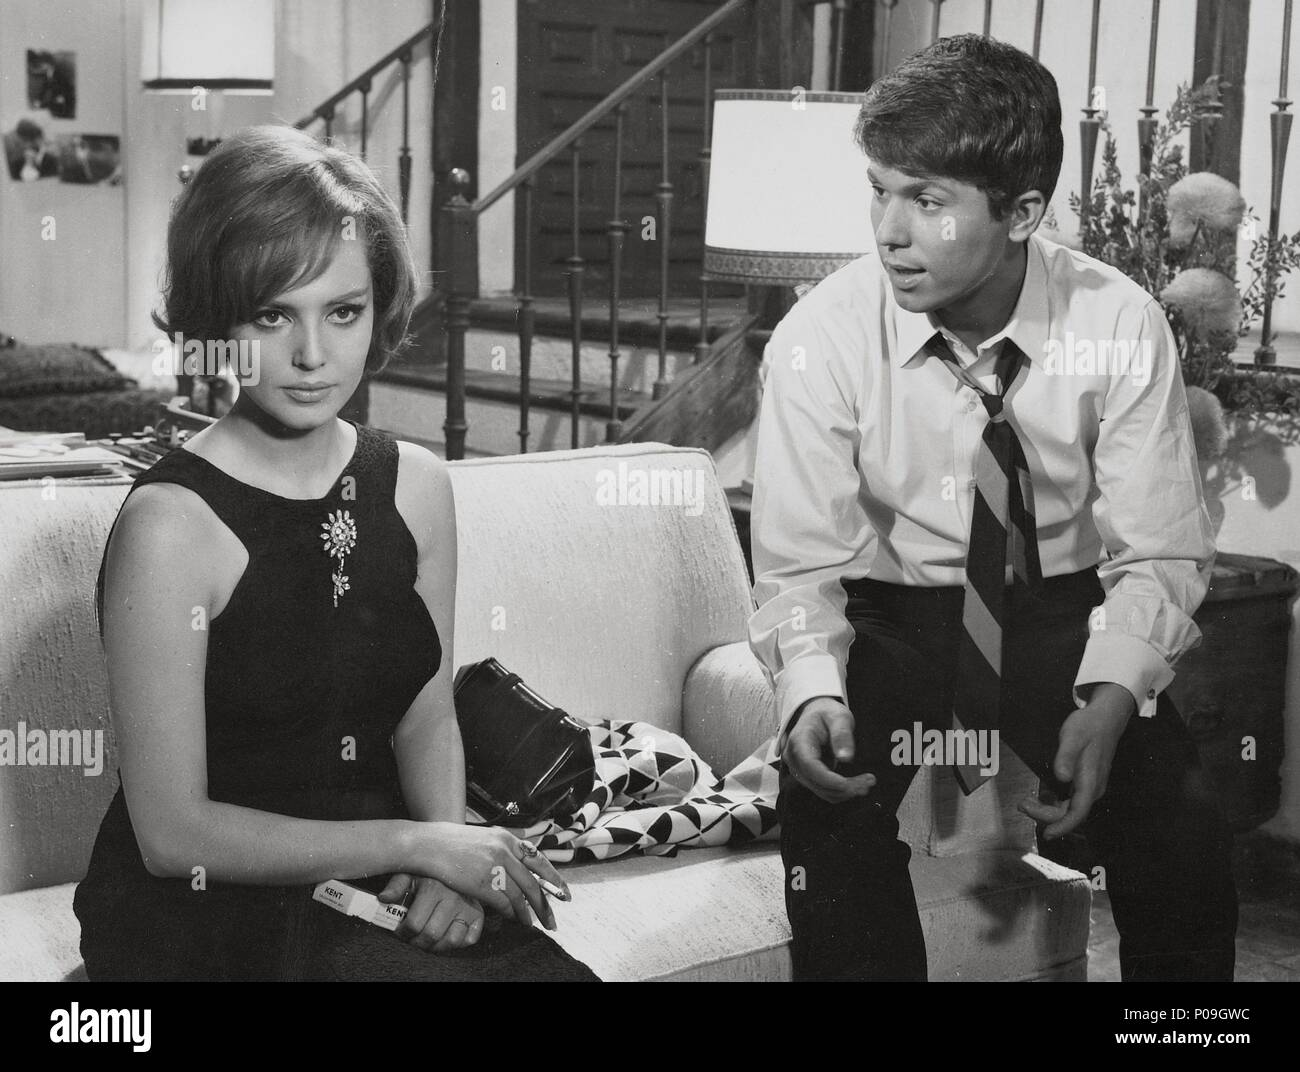 Original Film Title Cuando Tu No Estas English Title Cuando Tu No Estas Film Director Mario Camus Year 1966 Stars Raphael Cantante Maria Jose Alfonso Credit Filmayer Album Stock Photo Alamy